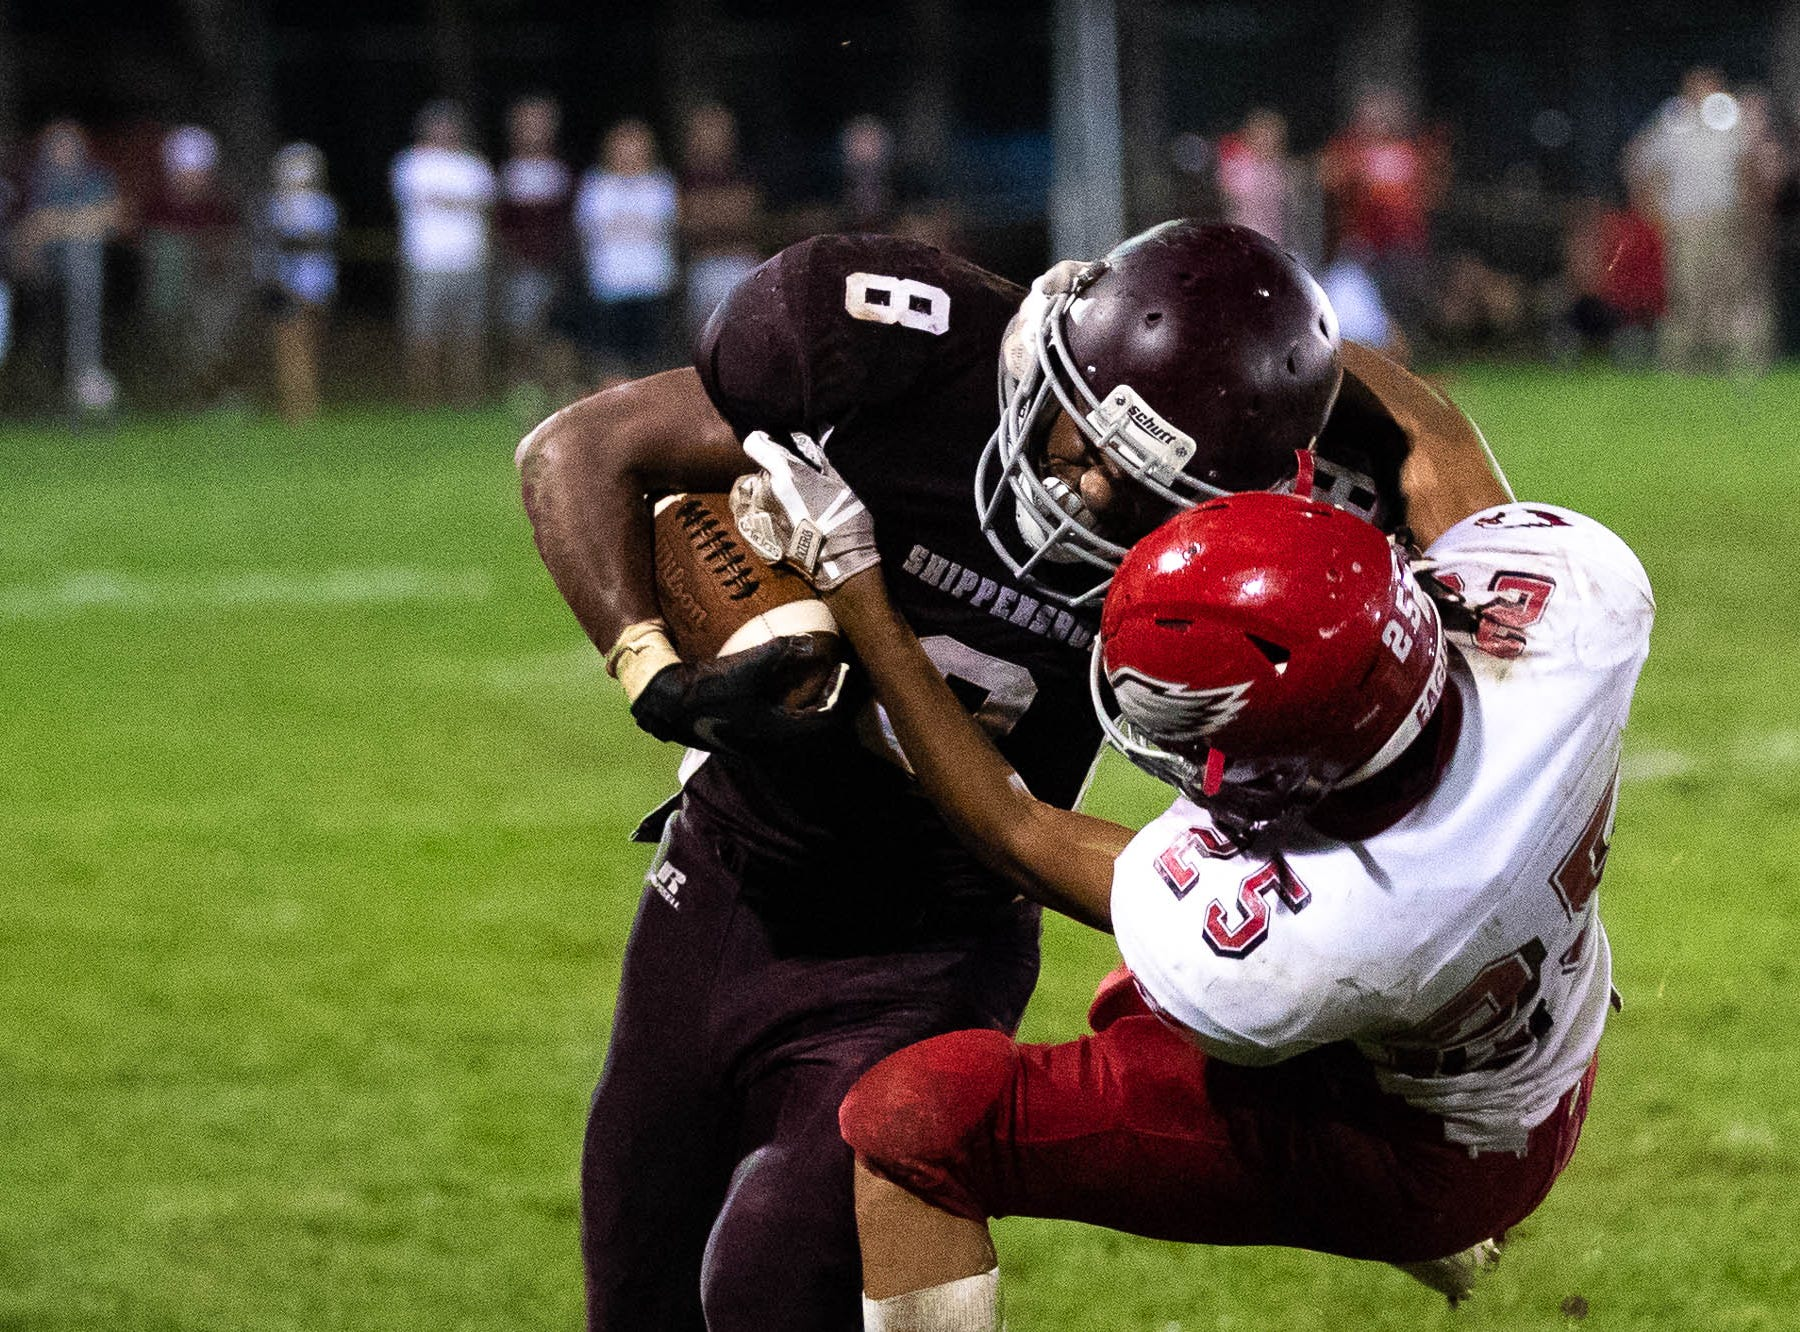 Shippensburg's Adam Houser (8) is taken down by Bermudian Springs' JJ Talley (25) during a football game between Shippensburg and Bermudian Springs, Friday, Sept. 7, 2018, at Shippensburg High School. The Shippensburg Greyhounds defeated the Bermudian Springs Eagles 31-17.